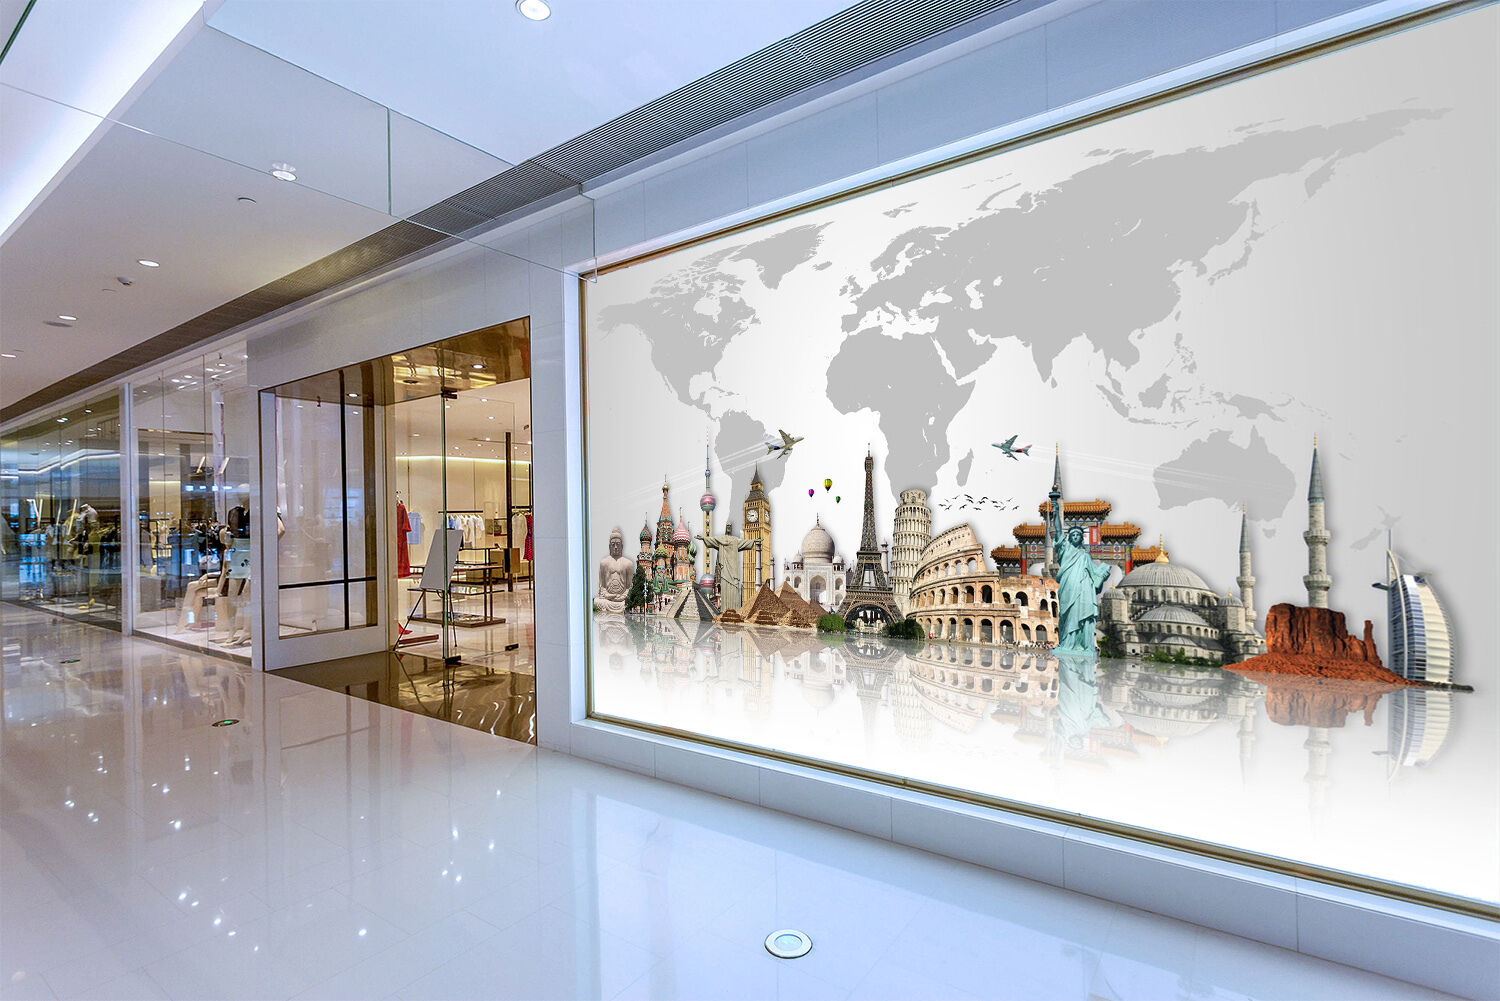 3D Towers Steeple House Wall Paper wall Print Decal Wall Deco Indoor wall Mural